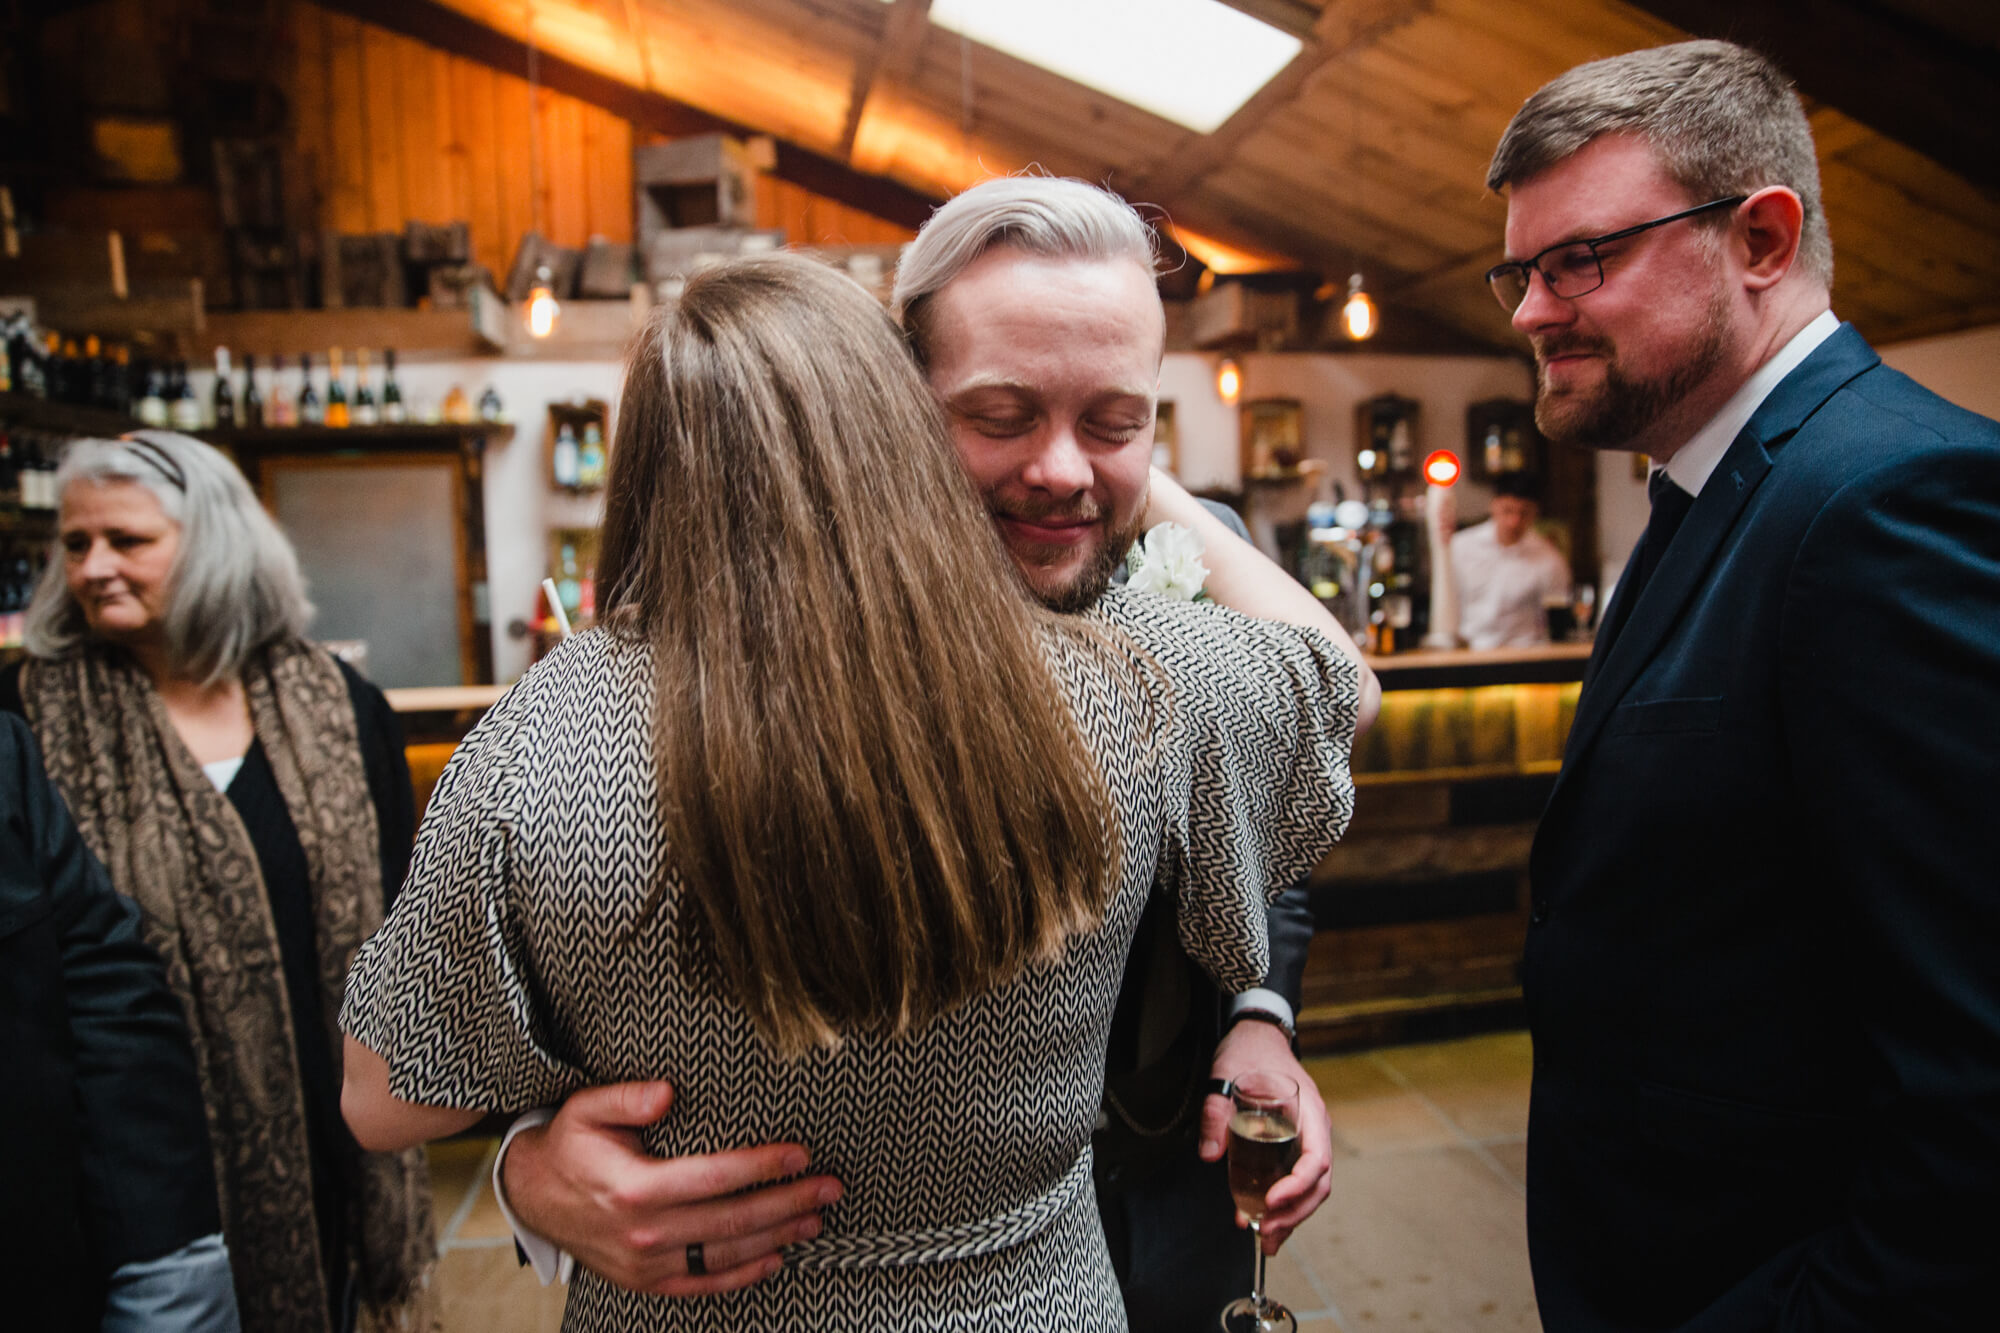 friend of newly married groom shares hug after wedding service